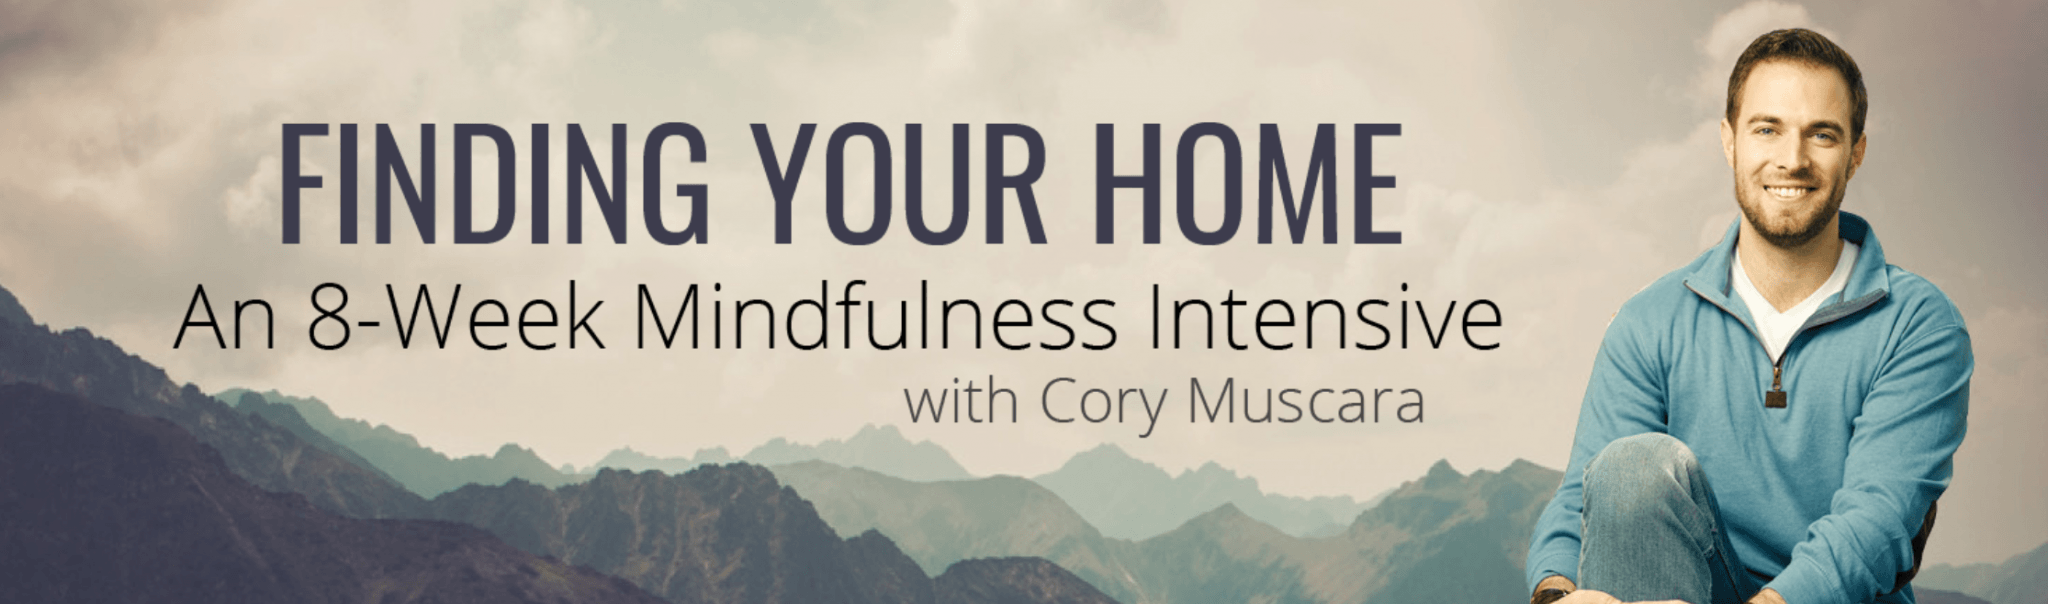 31 Days of Mindfulness Training with Cory Muscara